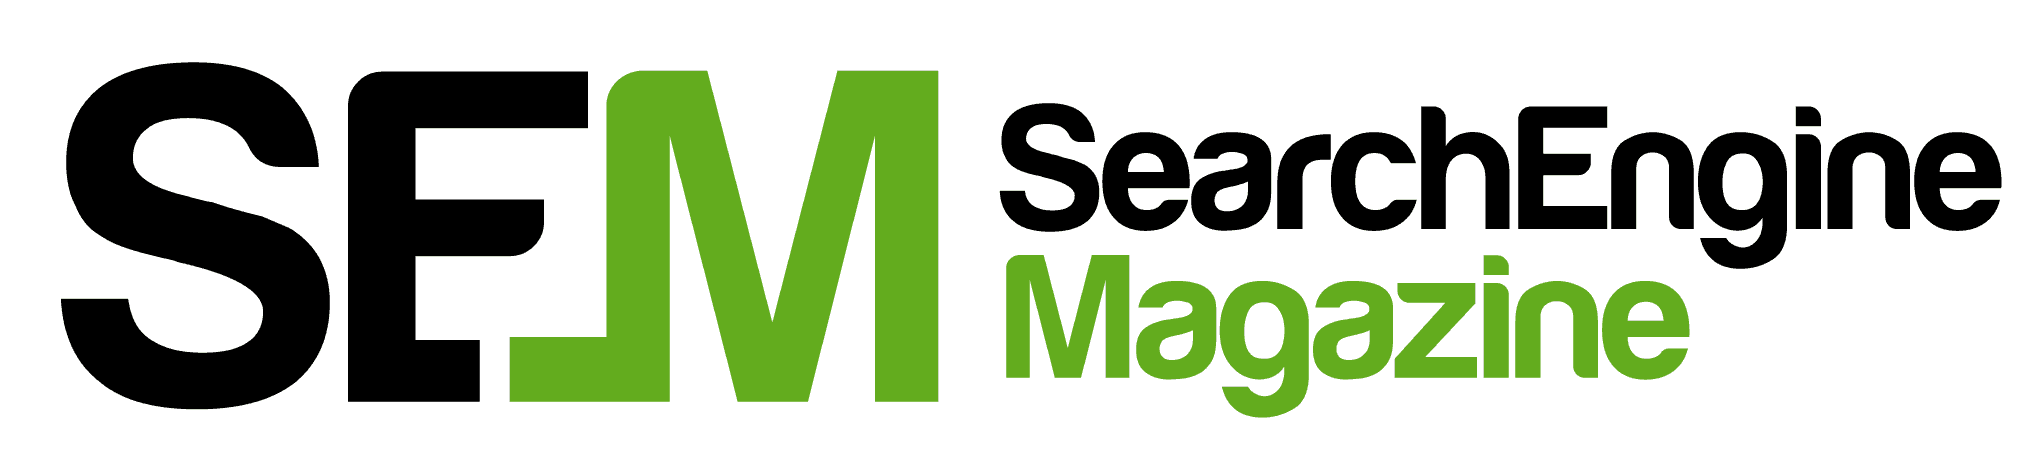 Search Engine Magazine